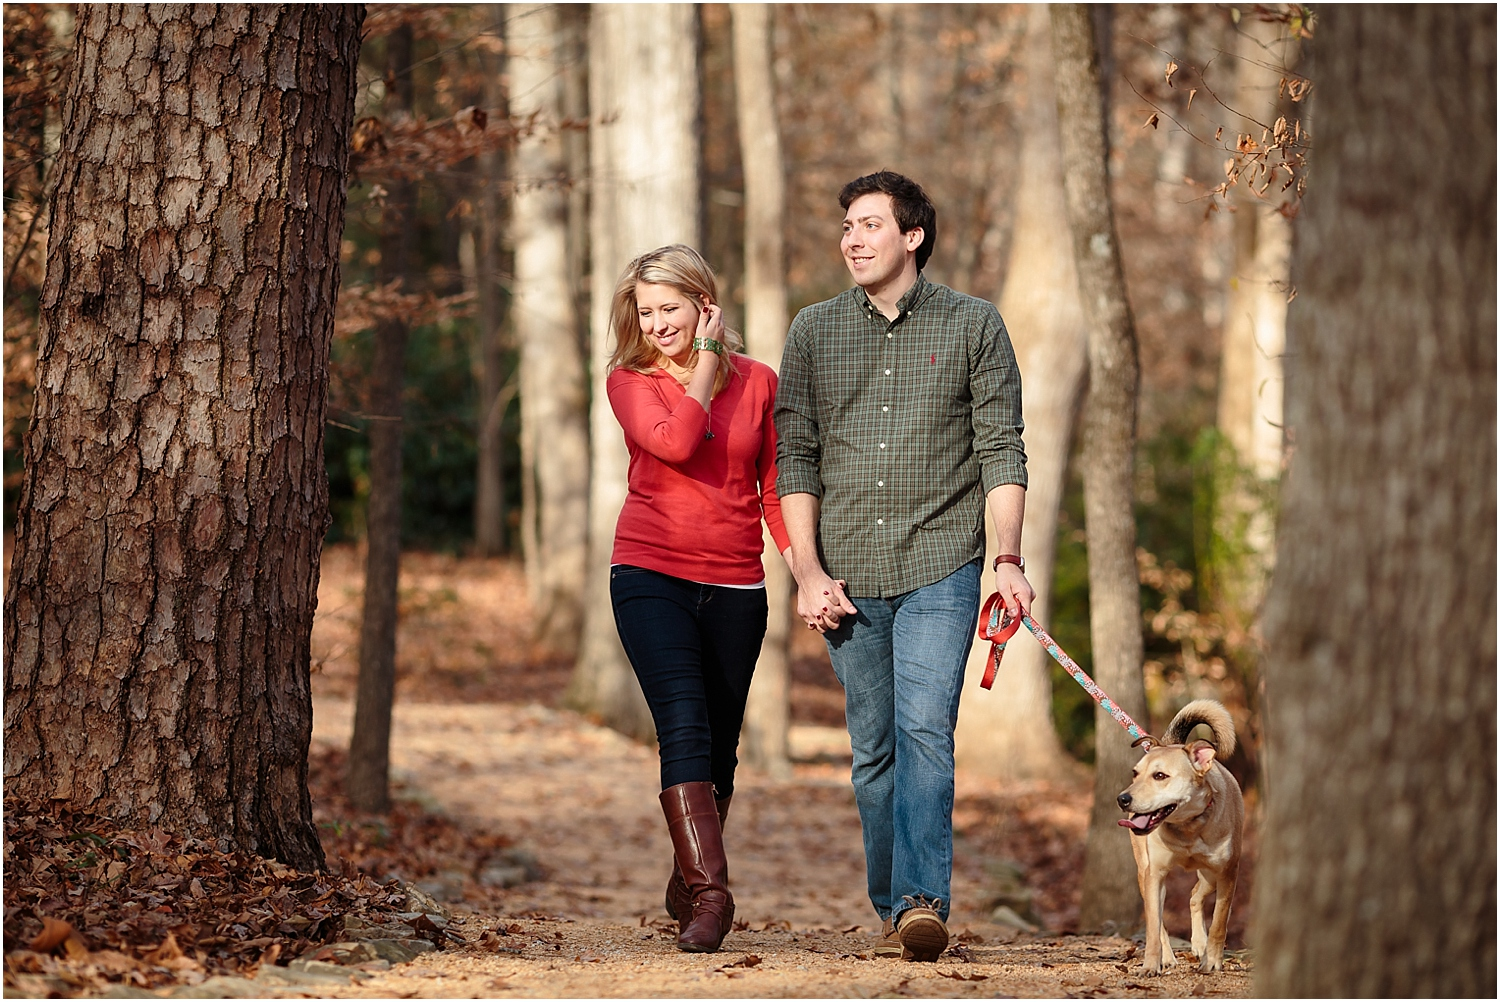 141207--9491clemson-engagement-shoot_blog.jpg